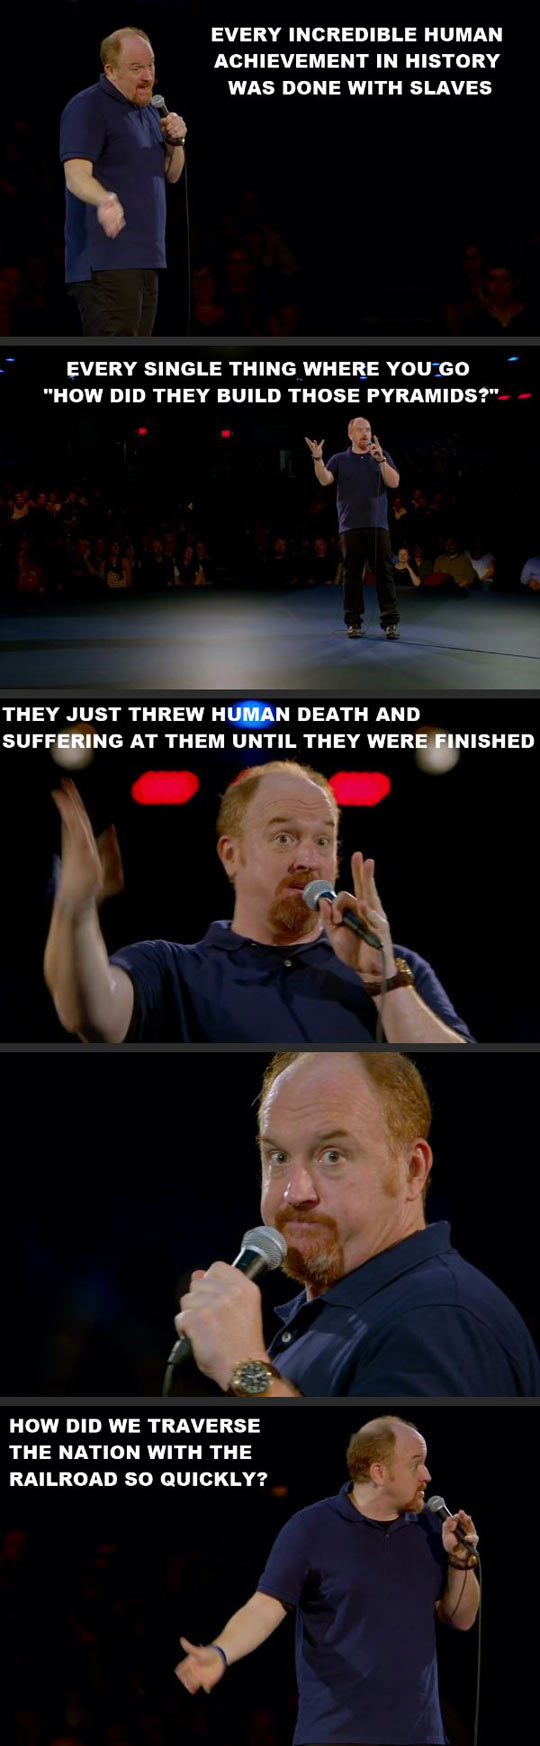 Louis C. K. on the great feats of human history...